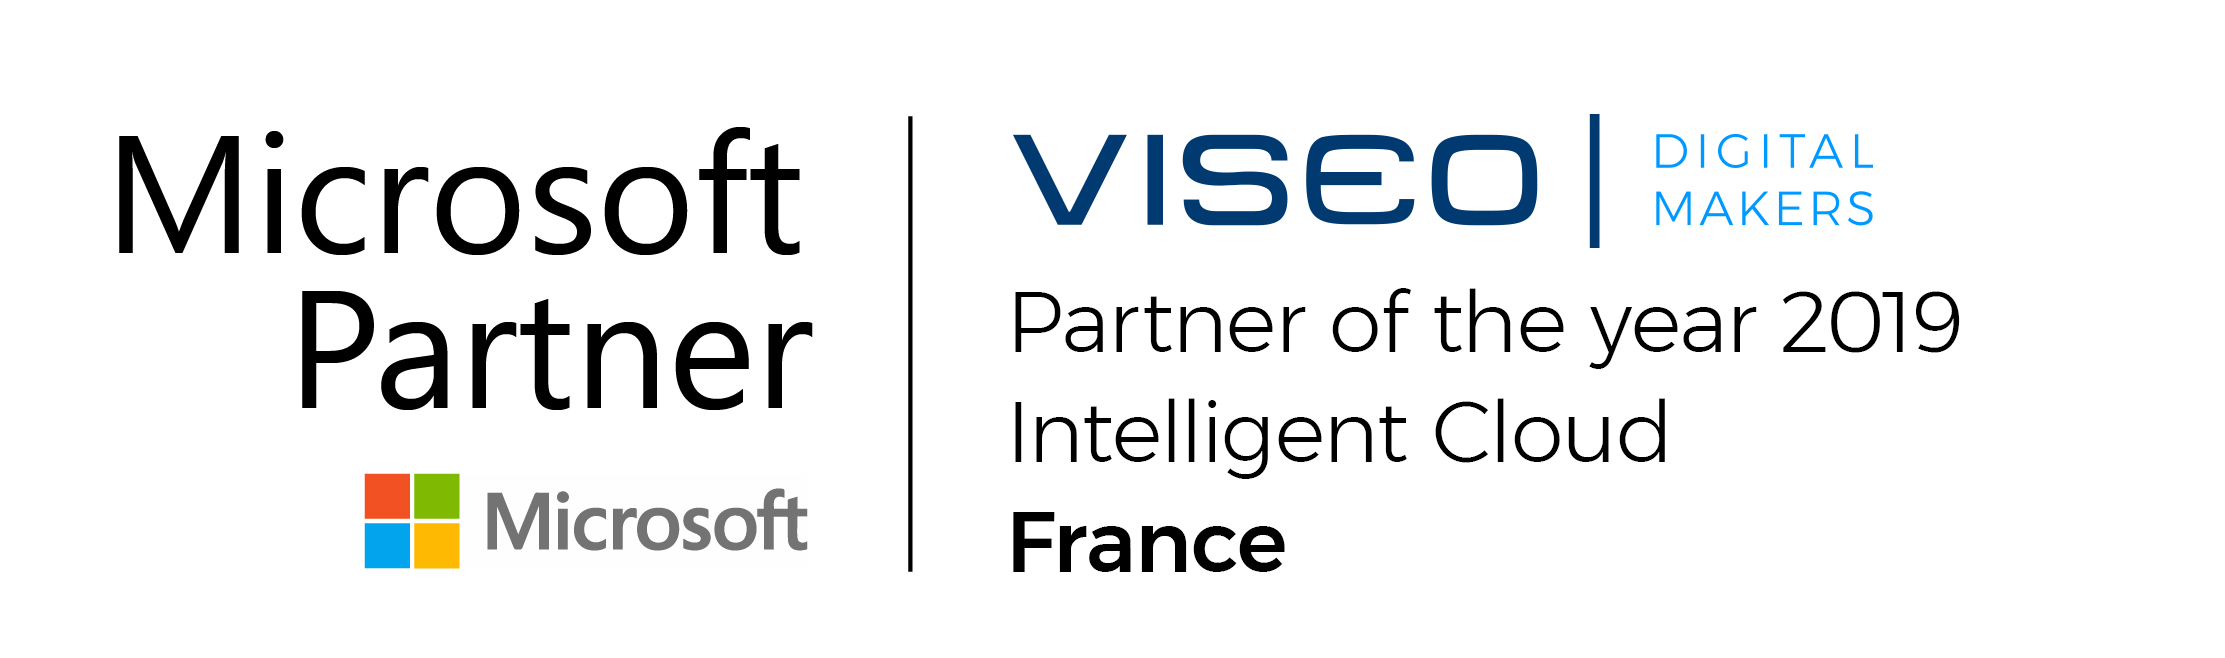 Microsoft partner of the year intelligence cloud by VISEO